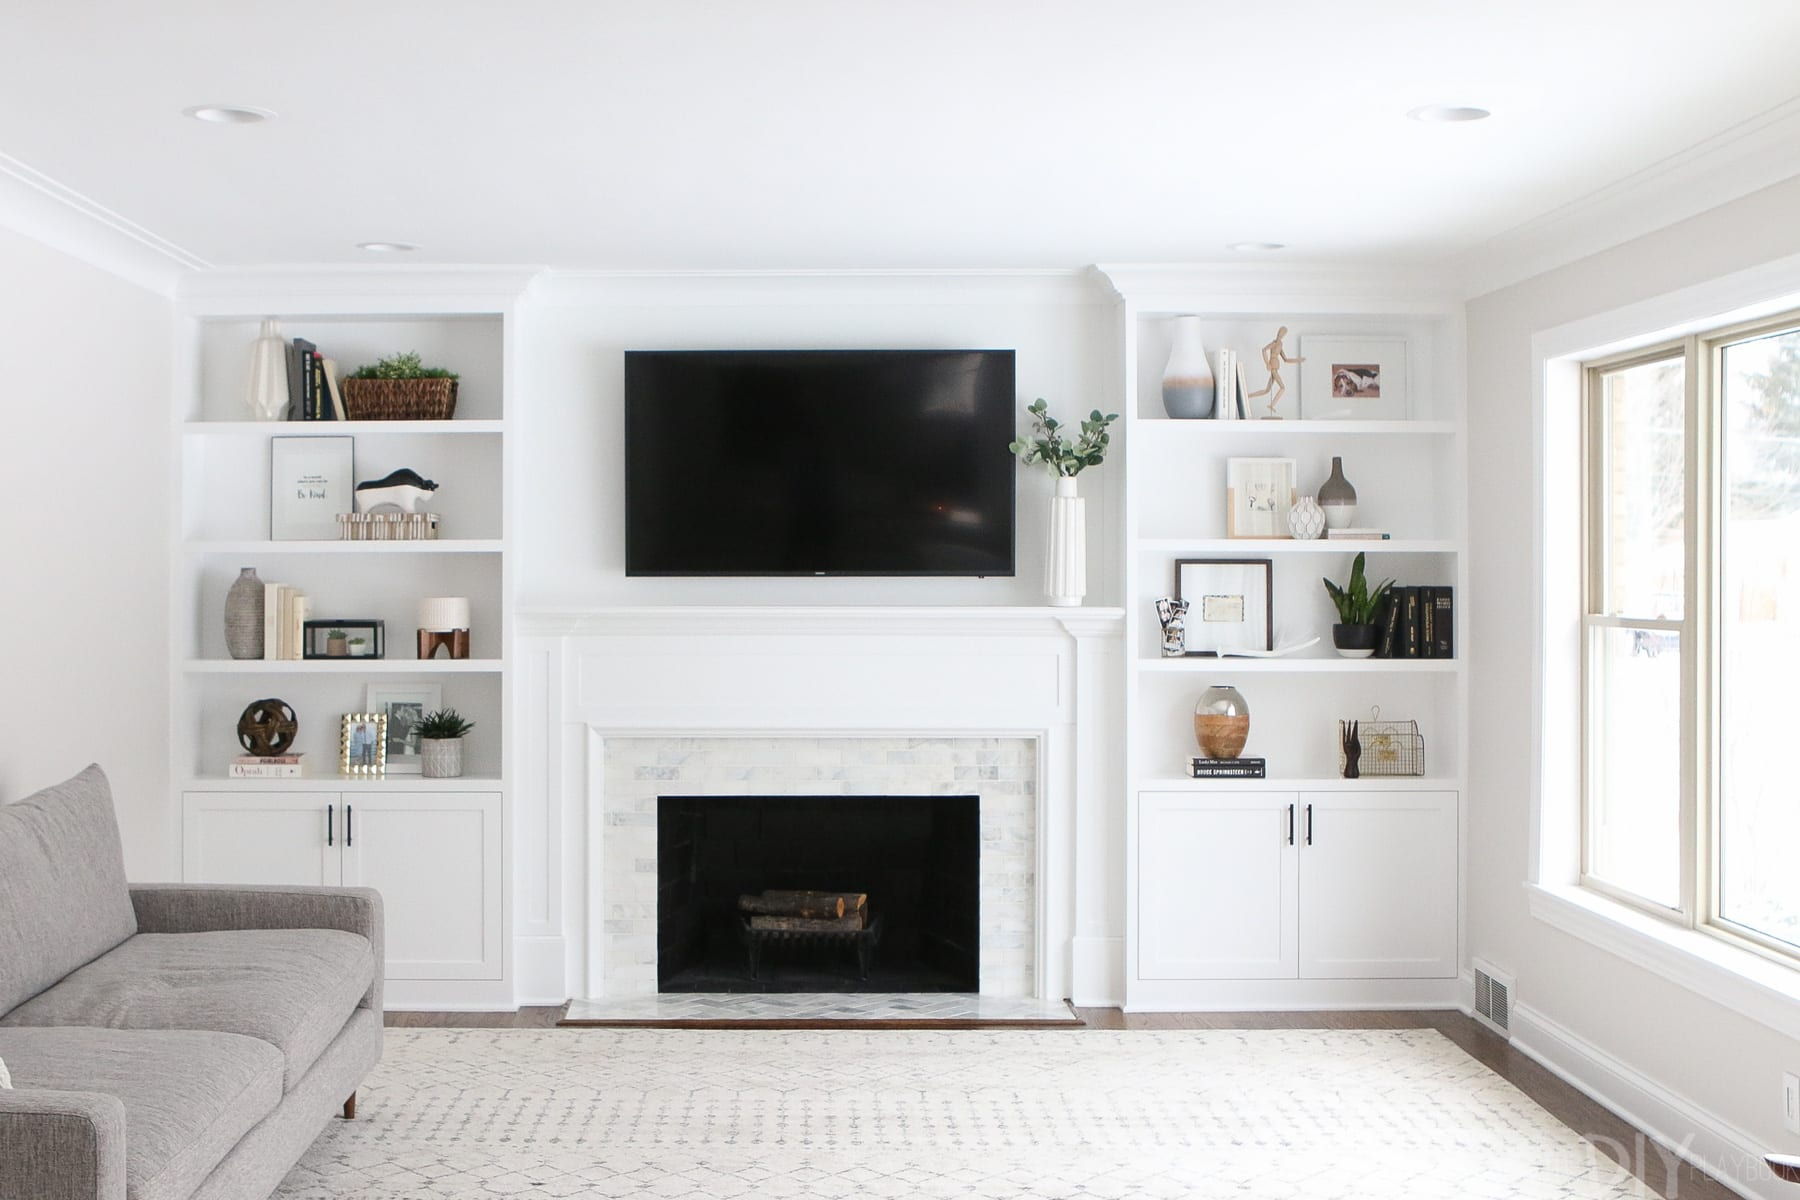 Decorating Shelves decorating built-in shelves can be difficult. read these tips to improve  your home YIPWVCJ